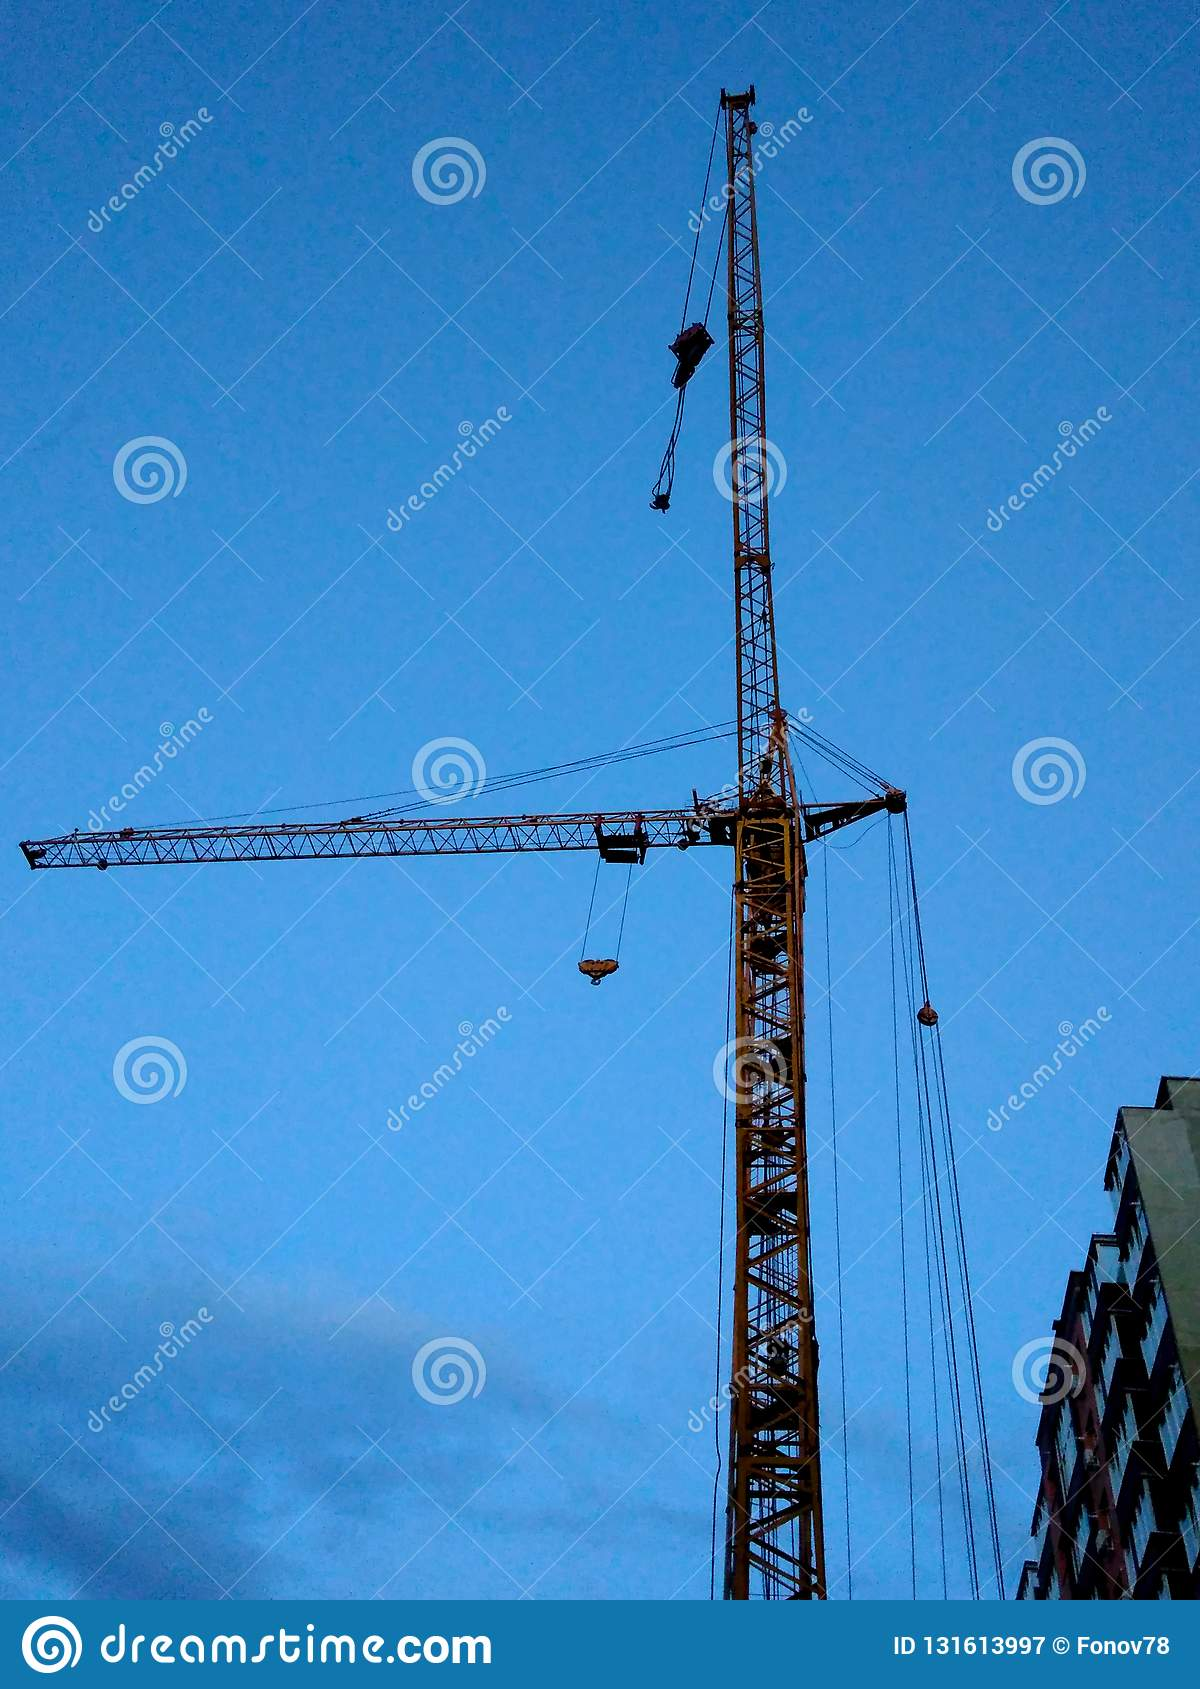 Construction site with a crane, repair work, blue sky at sunset